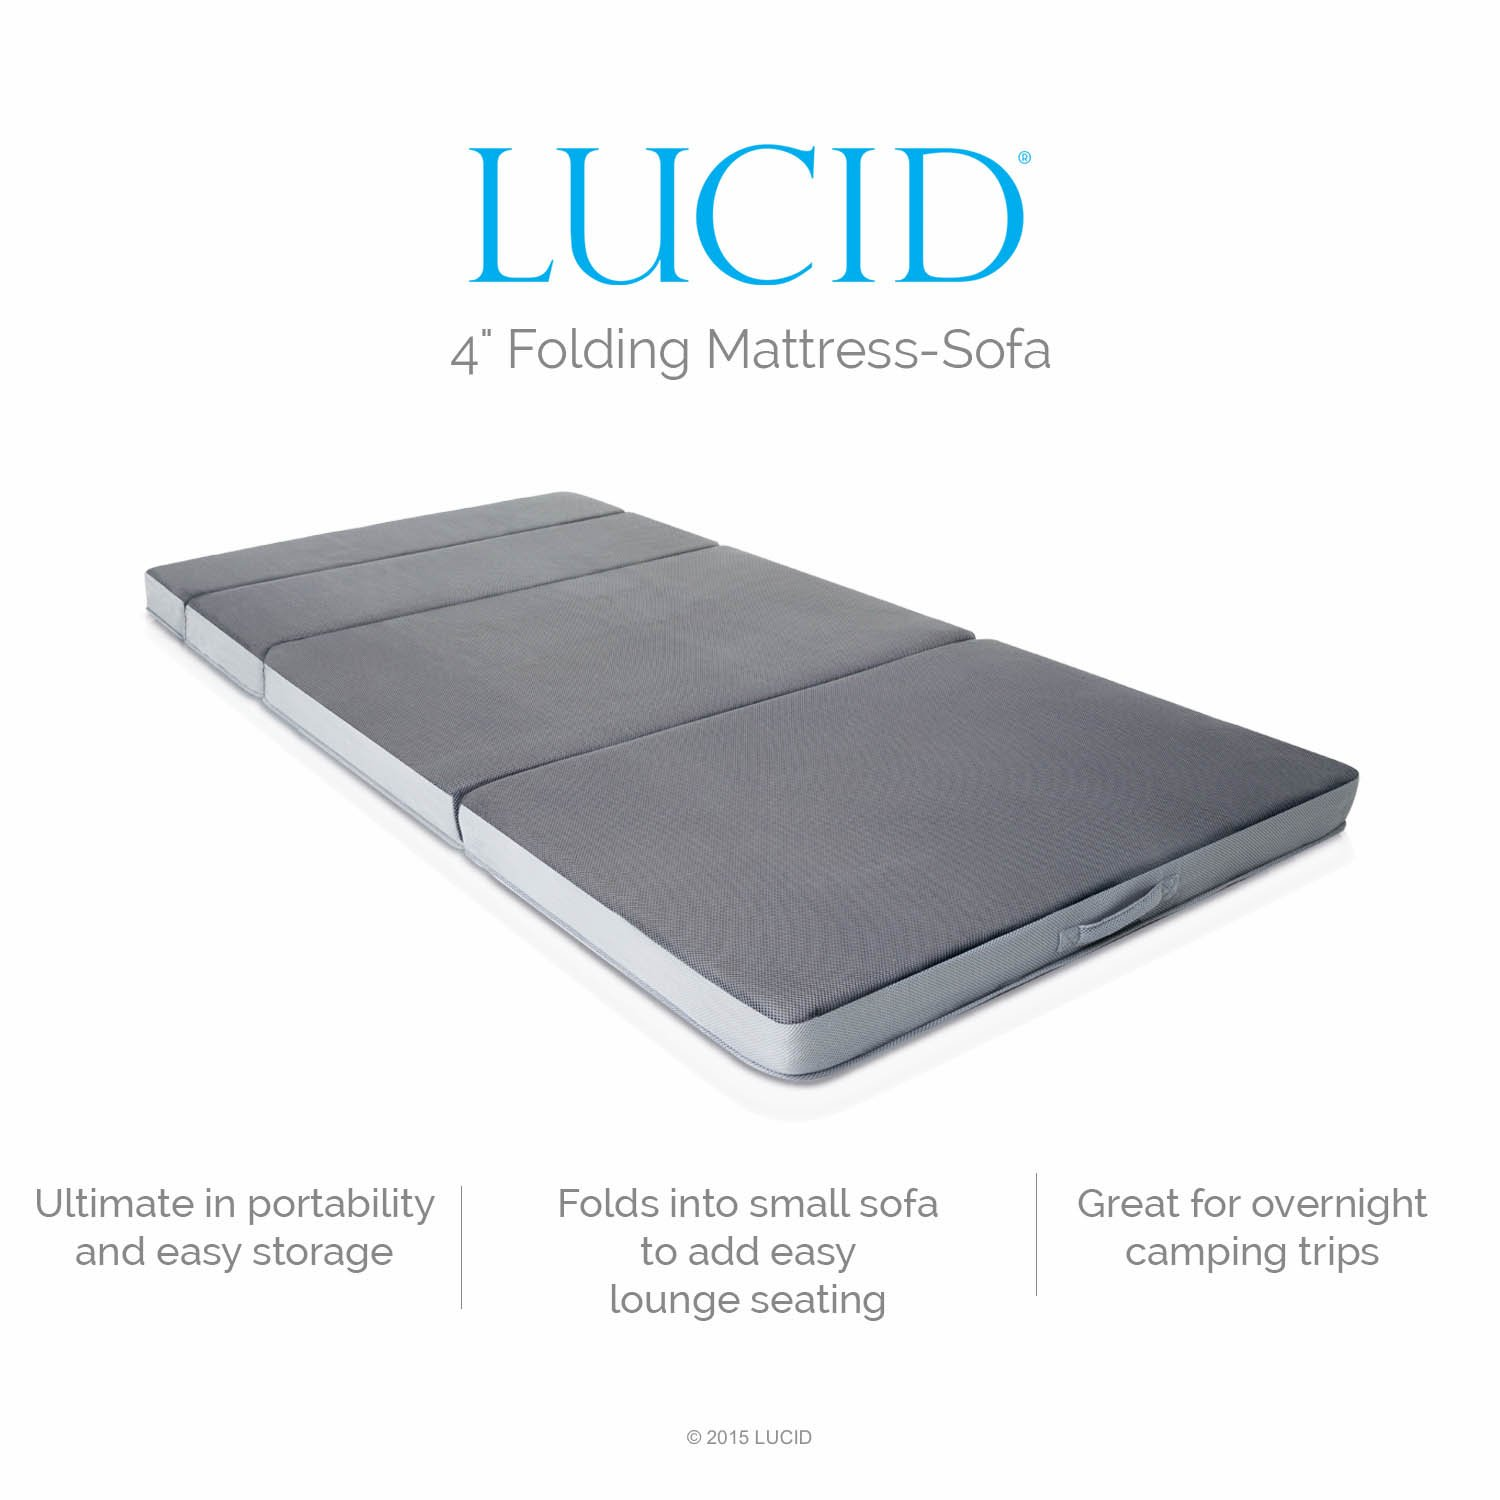 Lucid 4-Inch Folding Mattress, Twin Size: Amazon.ca: Home